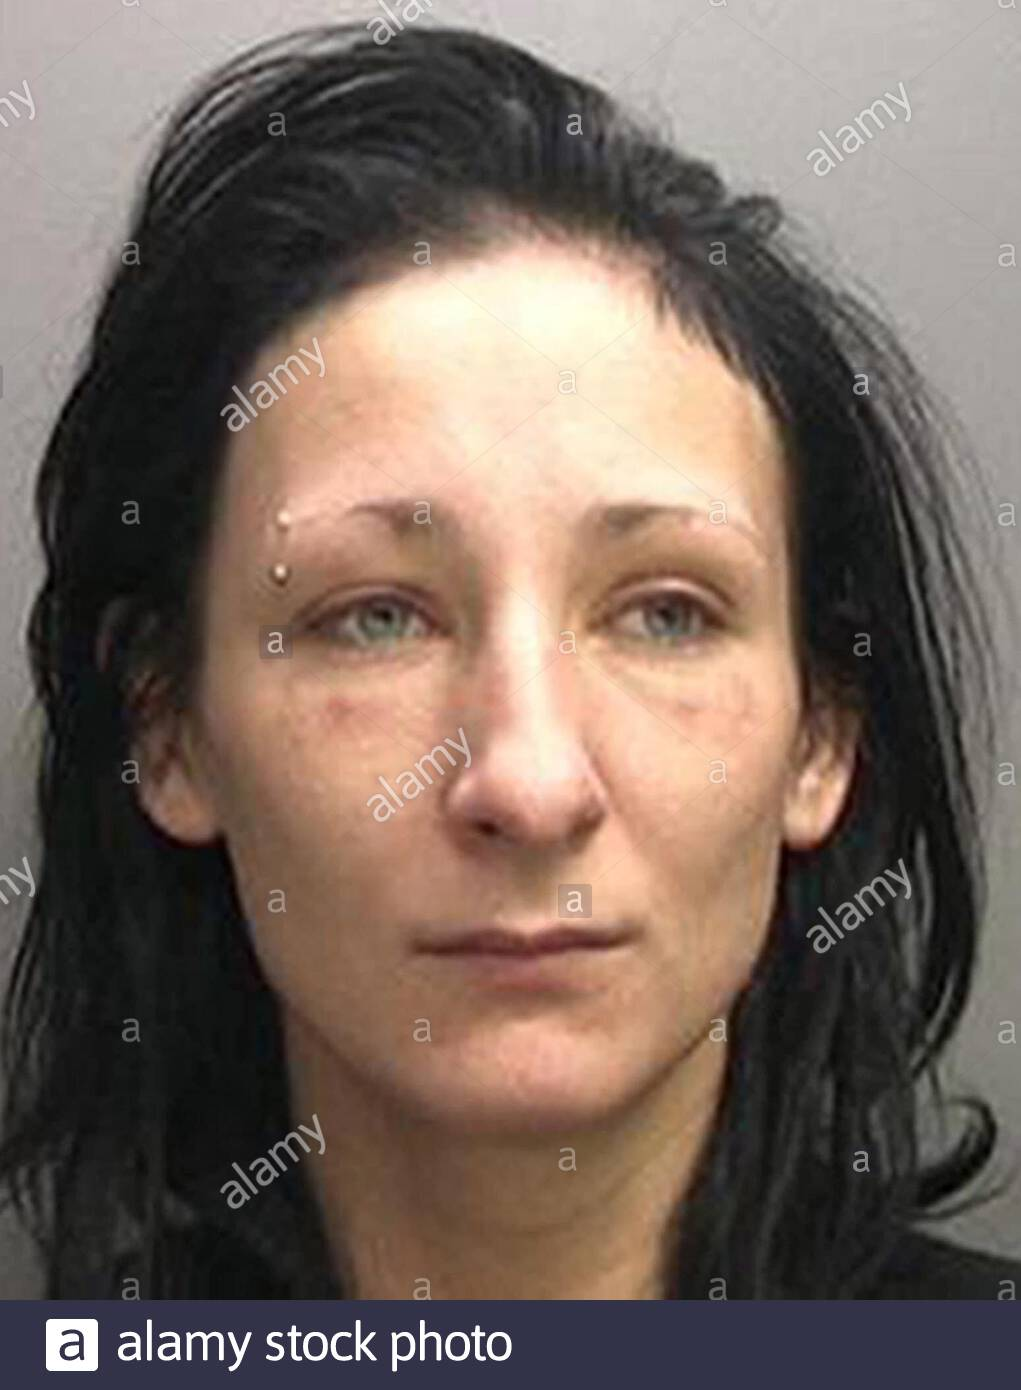 """BEST QUALITY AVAILABLE  Undated handout photo issued by West Midlands Police of Magdelena Luczak, the mother of Daniel Pelka, who along with his stepfather battered him to death after subjecting him to six months of systematic starvation and """"incomprehensible"""" cruelty. Stock Photo"""